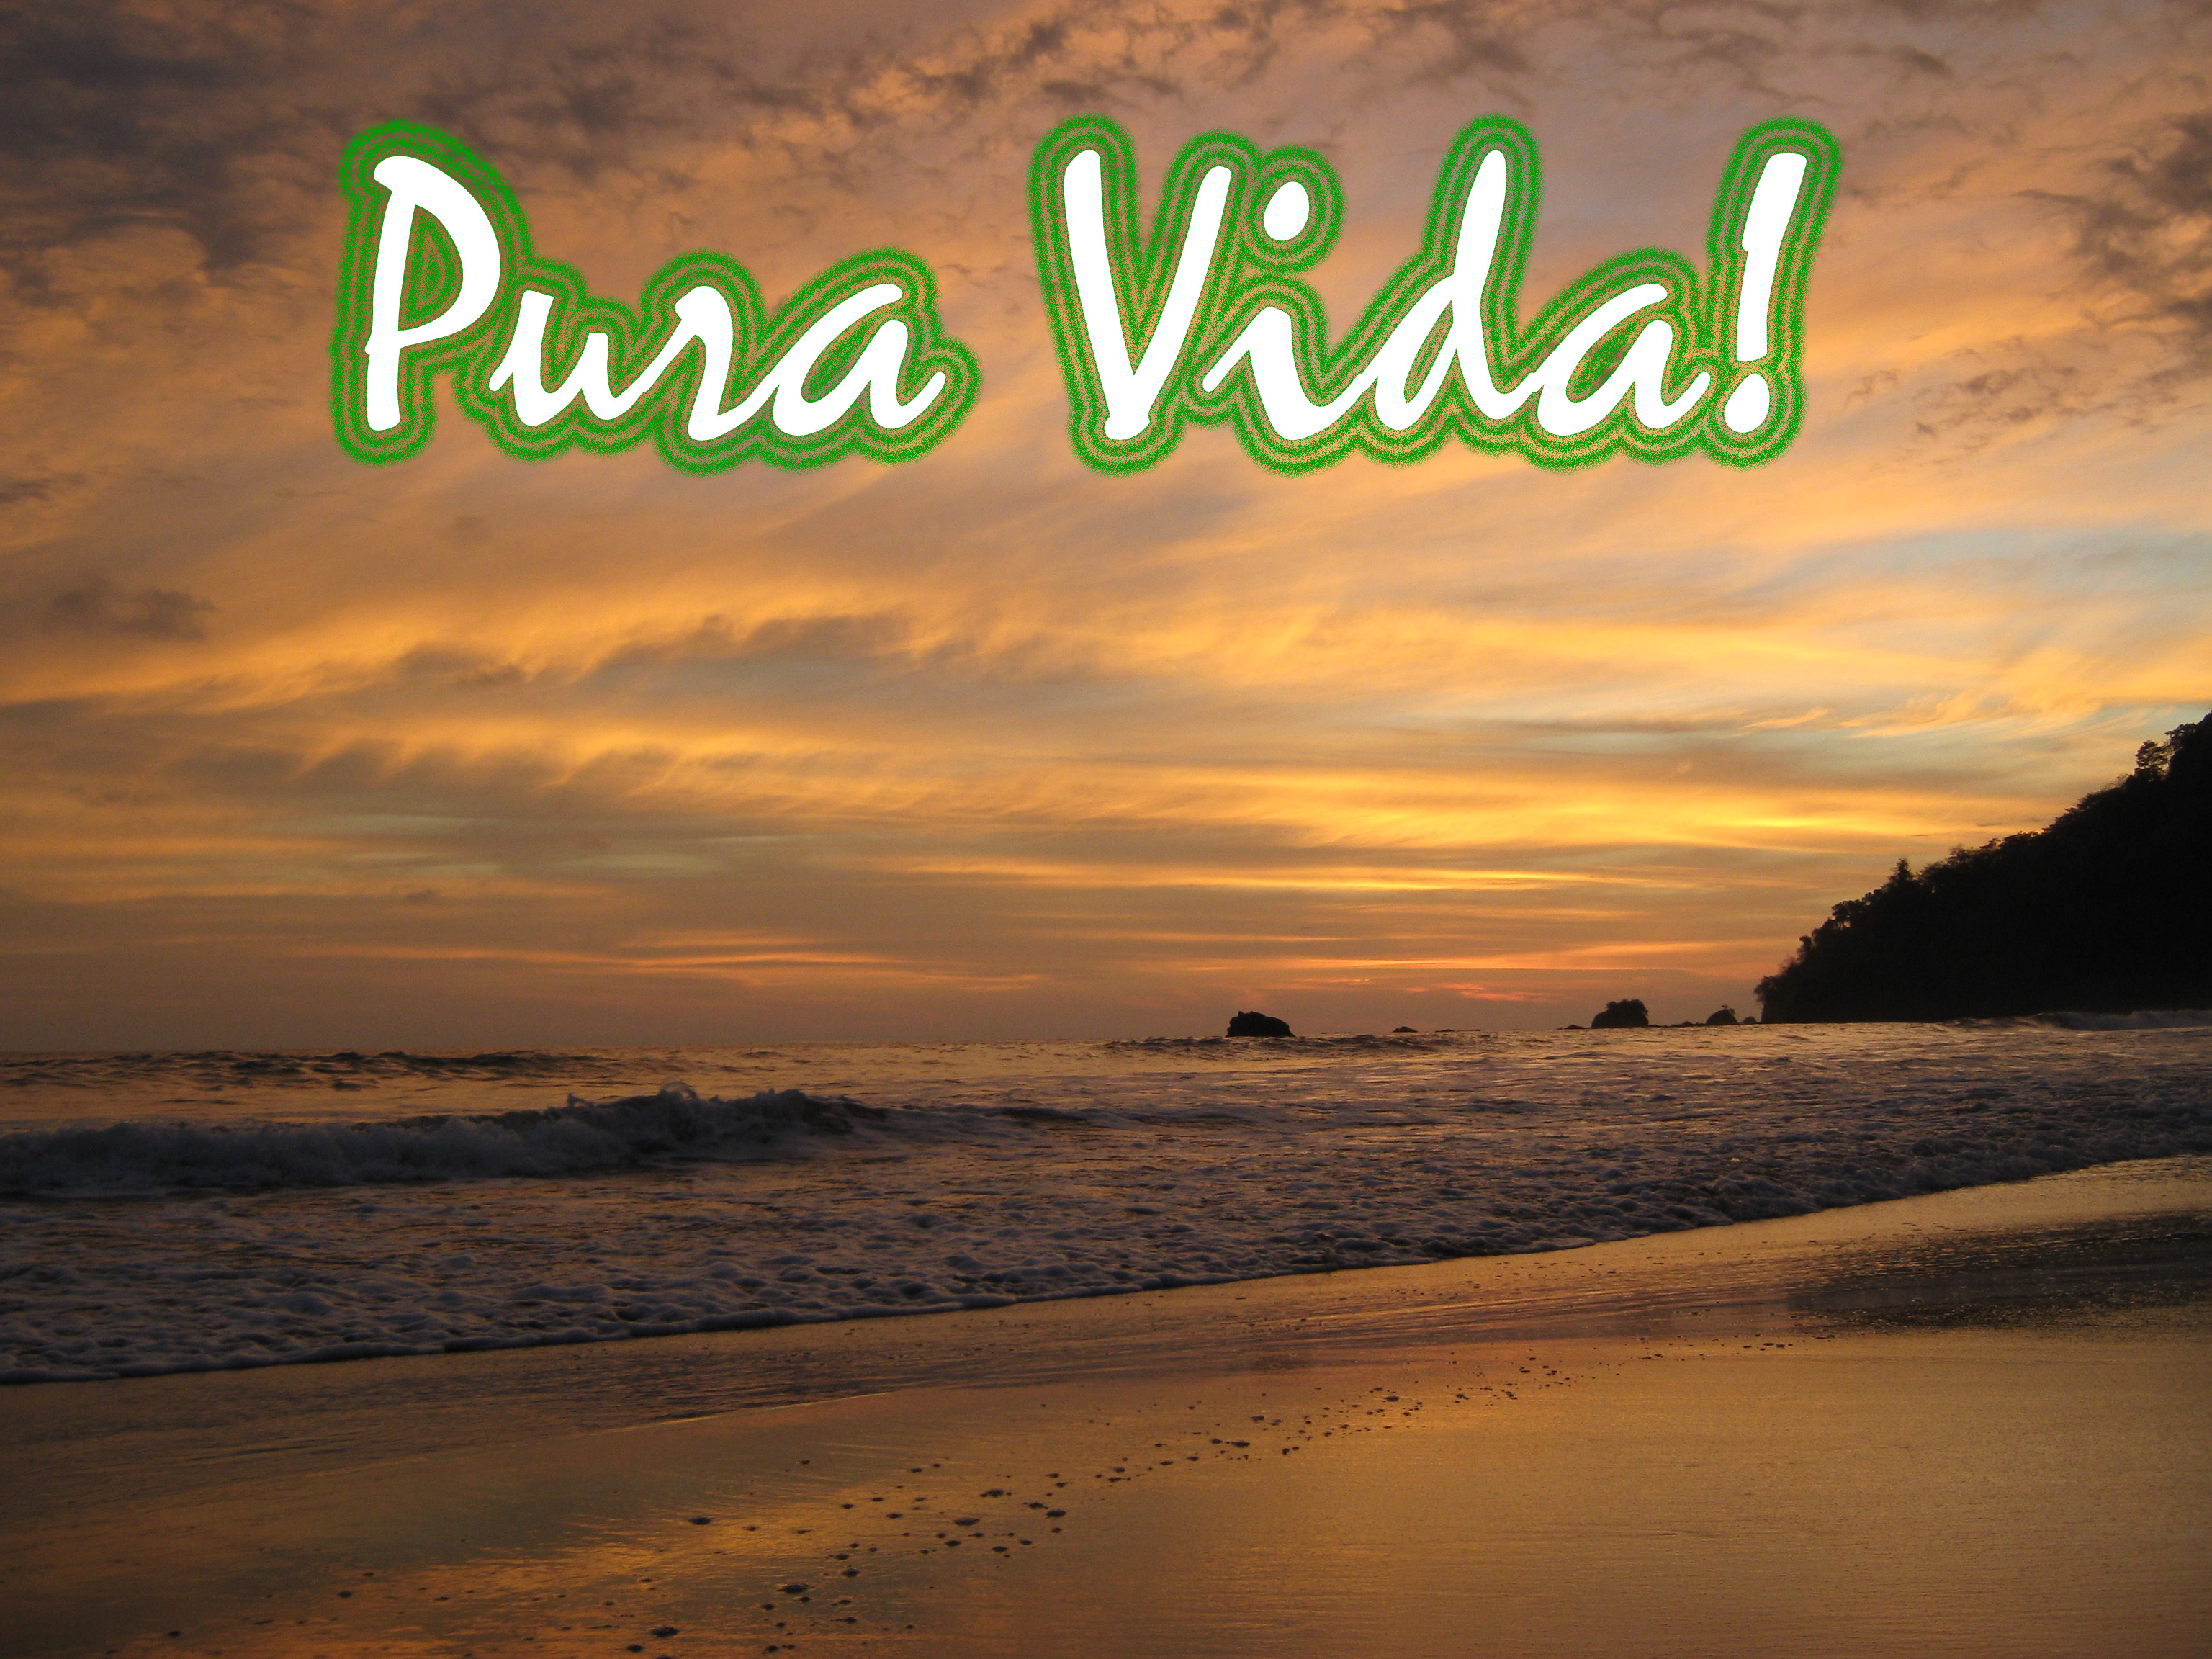 """pura vida """"pura vida"""" would be the answer the most commonly used phrase in costa rica  literally means """"pure life"""", but the saying goes beyond its."""